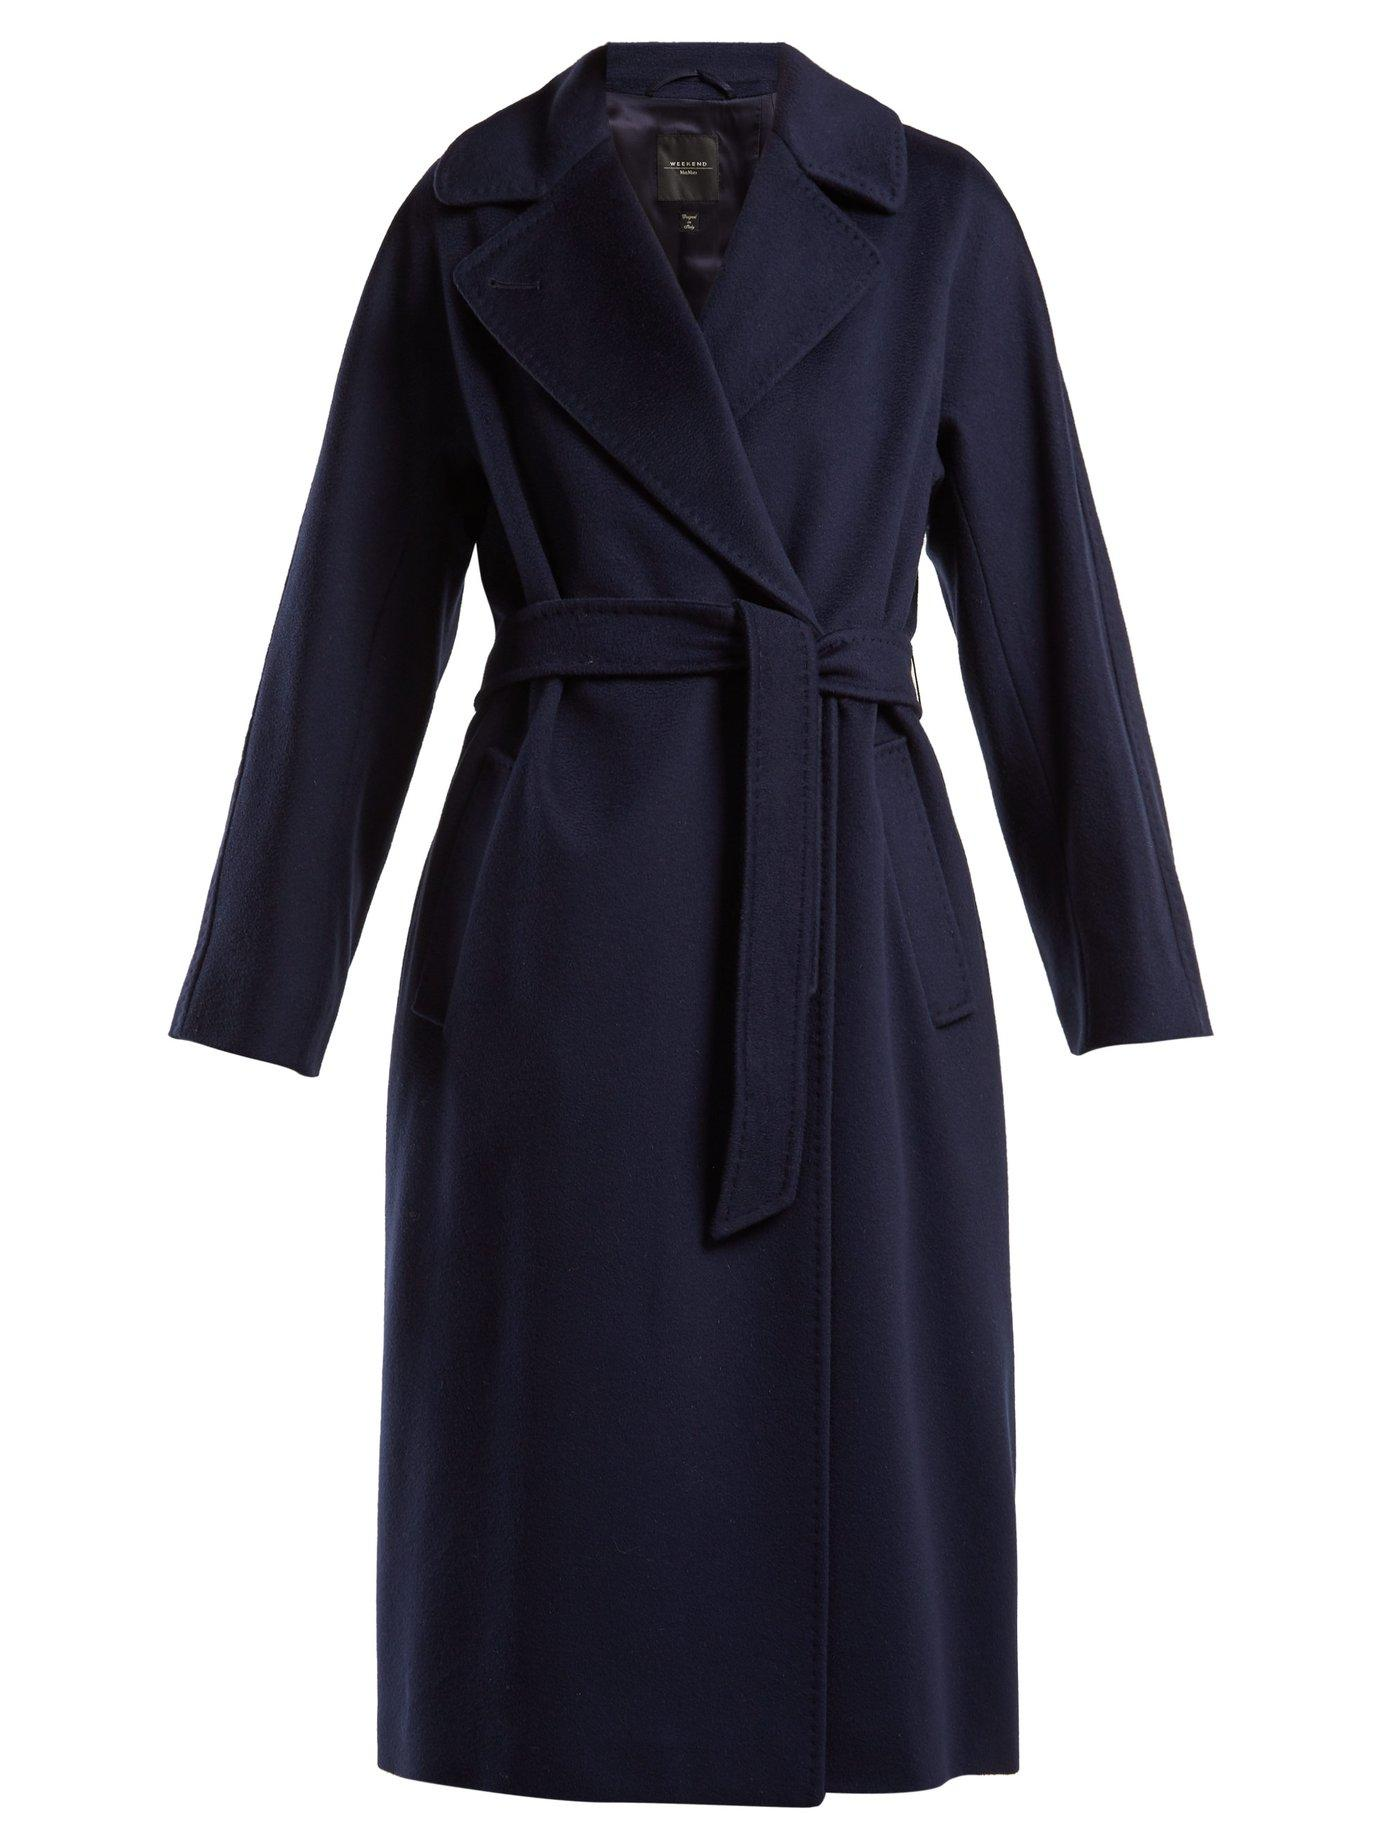 7bdec028ce2dc Weekend Max Mara Katai Coat In Navy